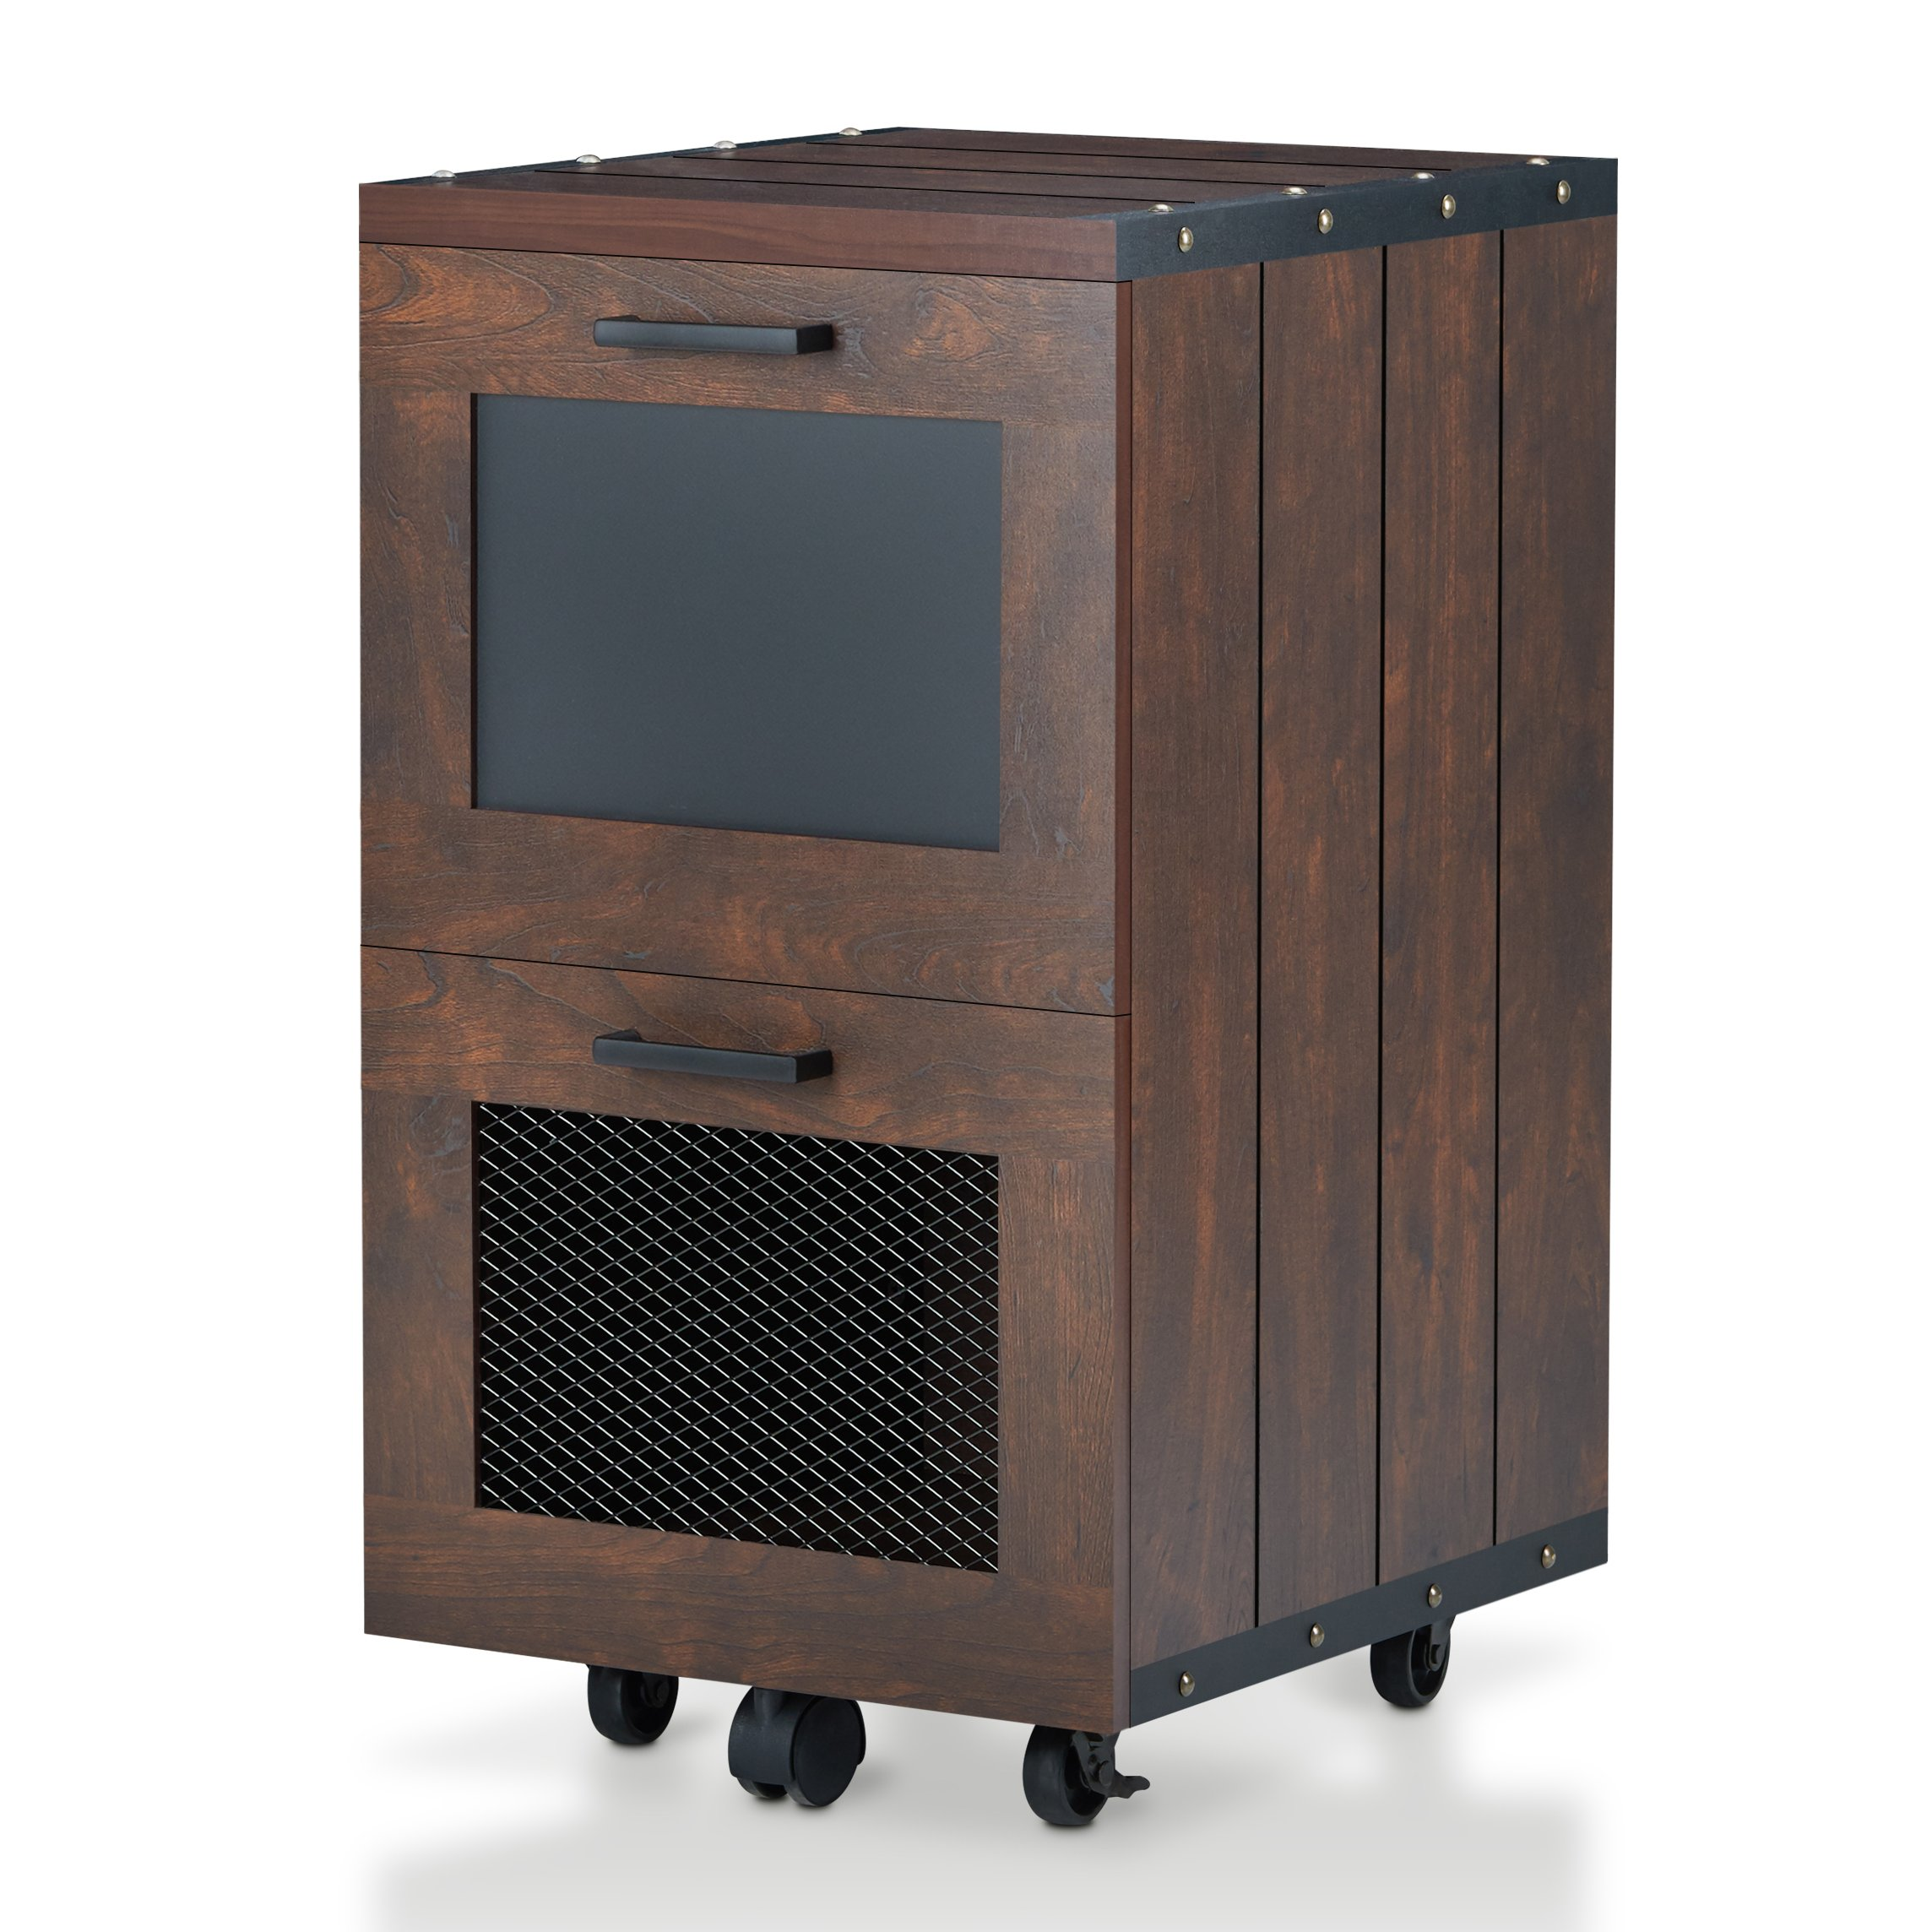 24/7 Shop at Home Olivia File Cabinet, One size, Vintage Walnut by 24/7 Shop at Home